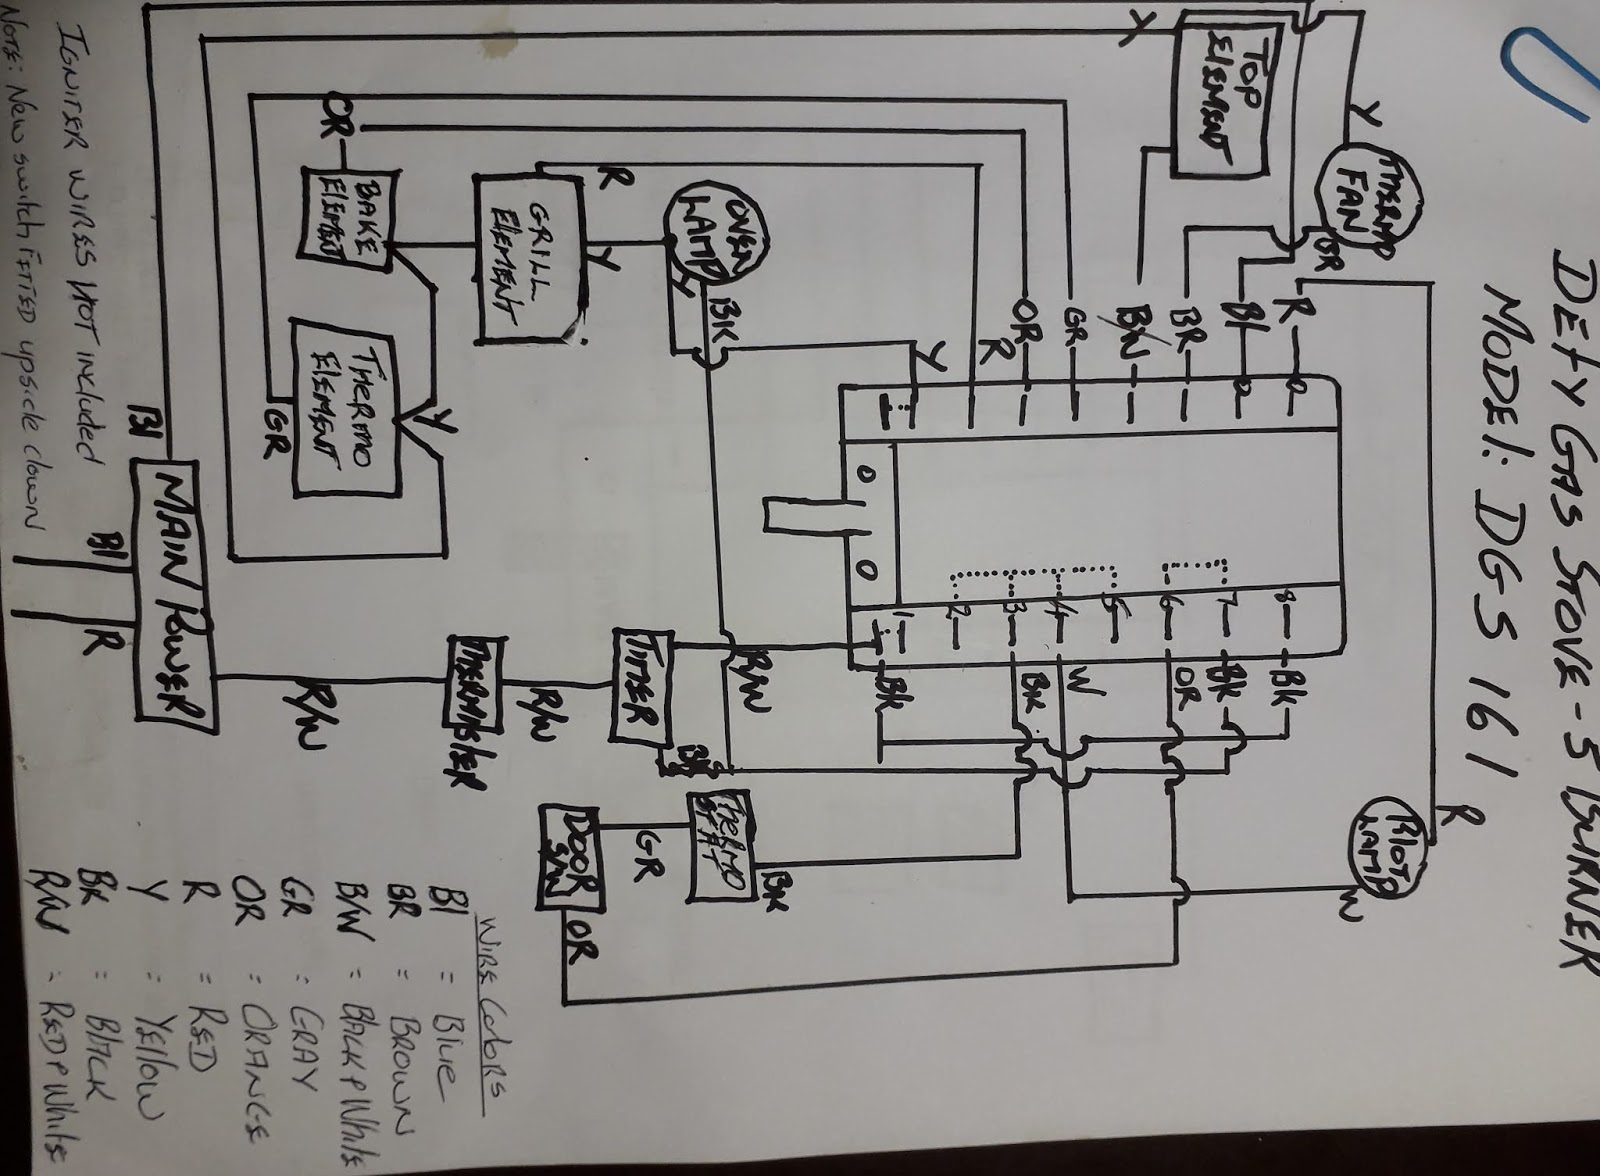 Gas Stove Wiring Diagram Jonway Engine Diagrams For Wiring Diagram Schematics